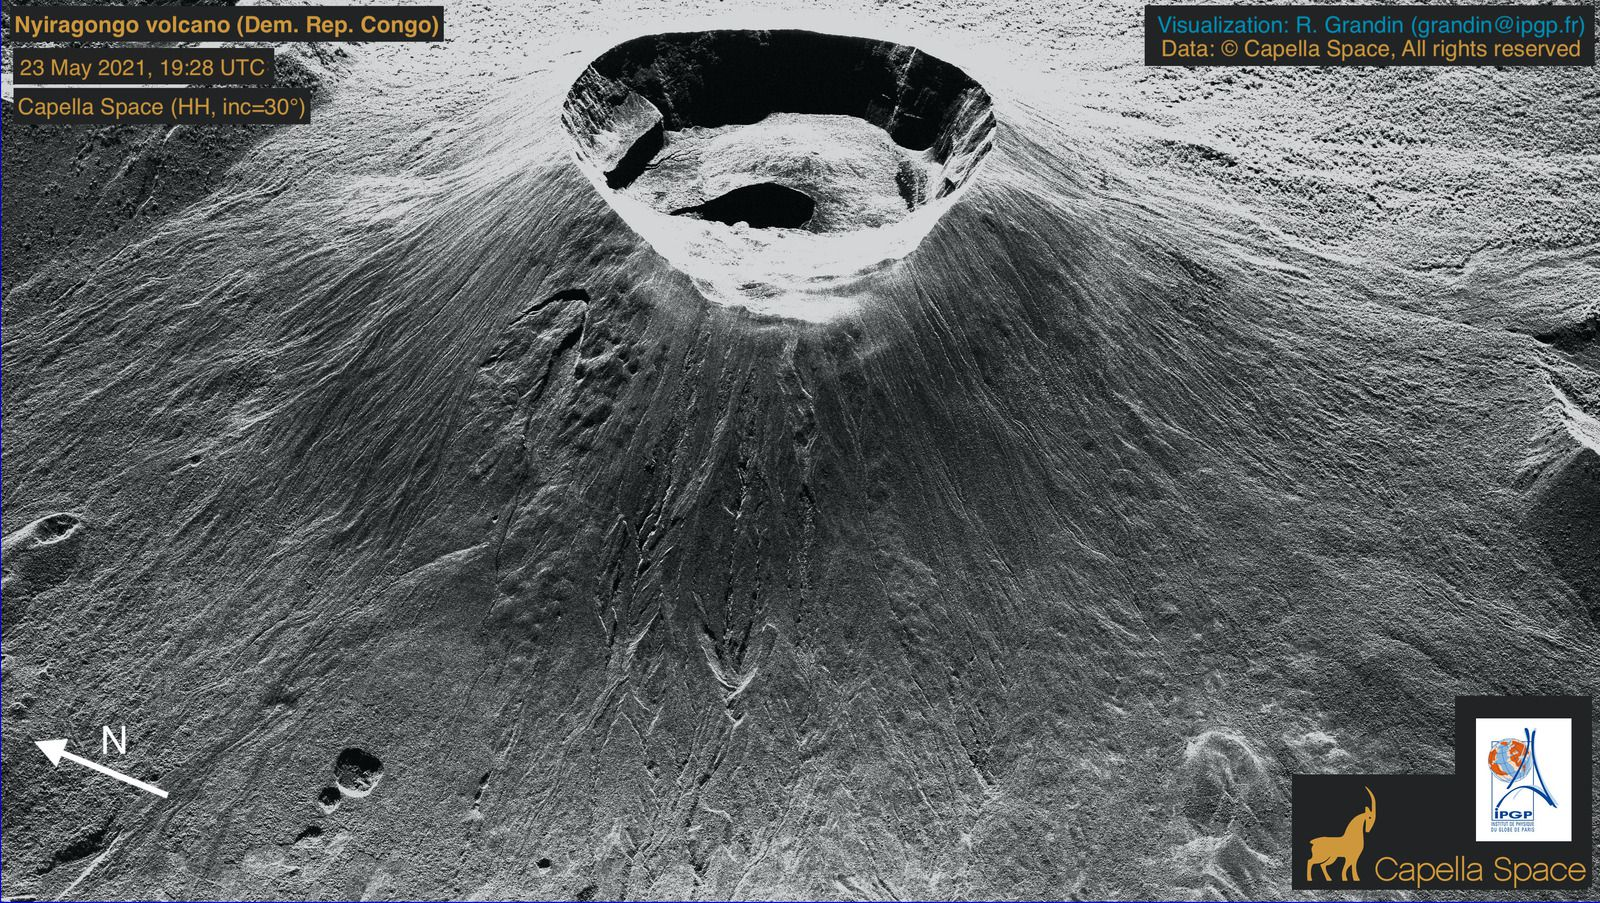 Nyiragongo - Modifications to the summit crater - 23.05.2021 / 19:28 - Doc. Capella Space / IPGP